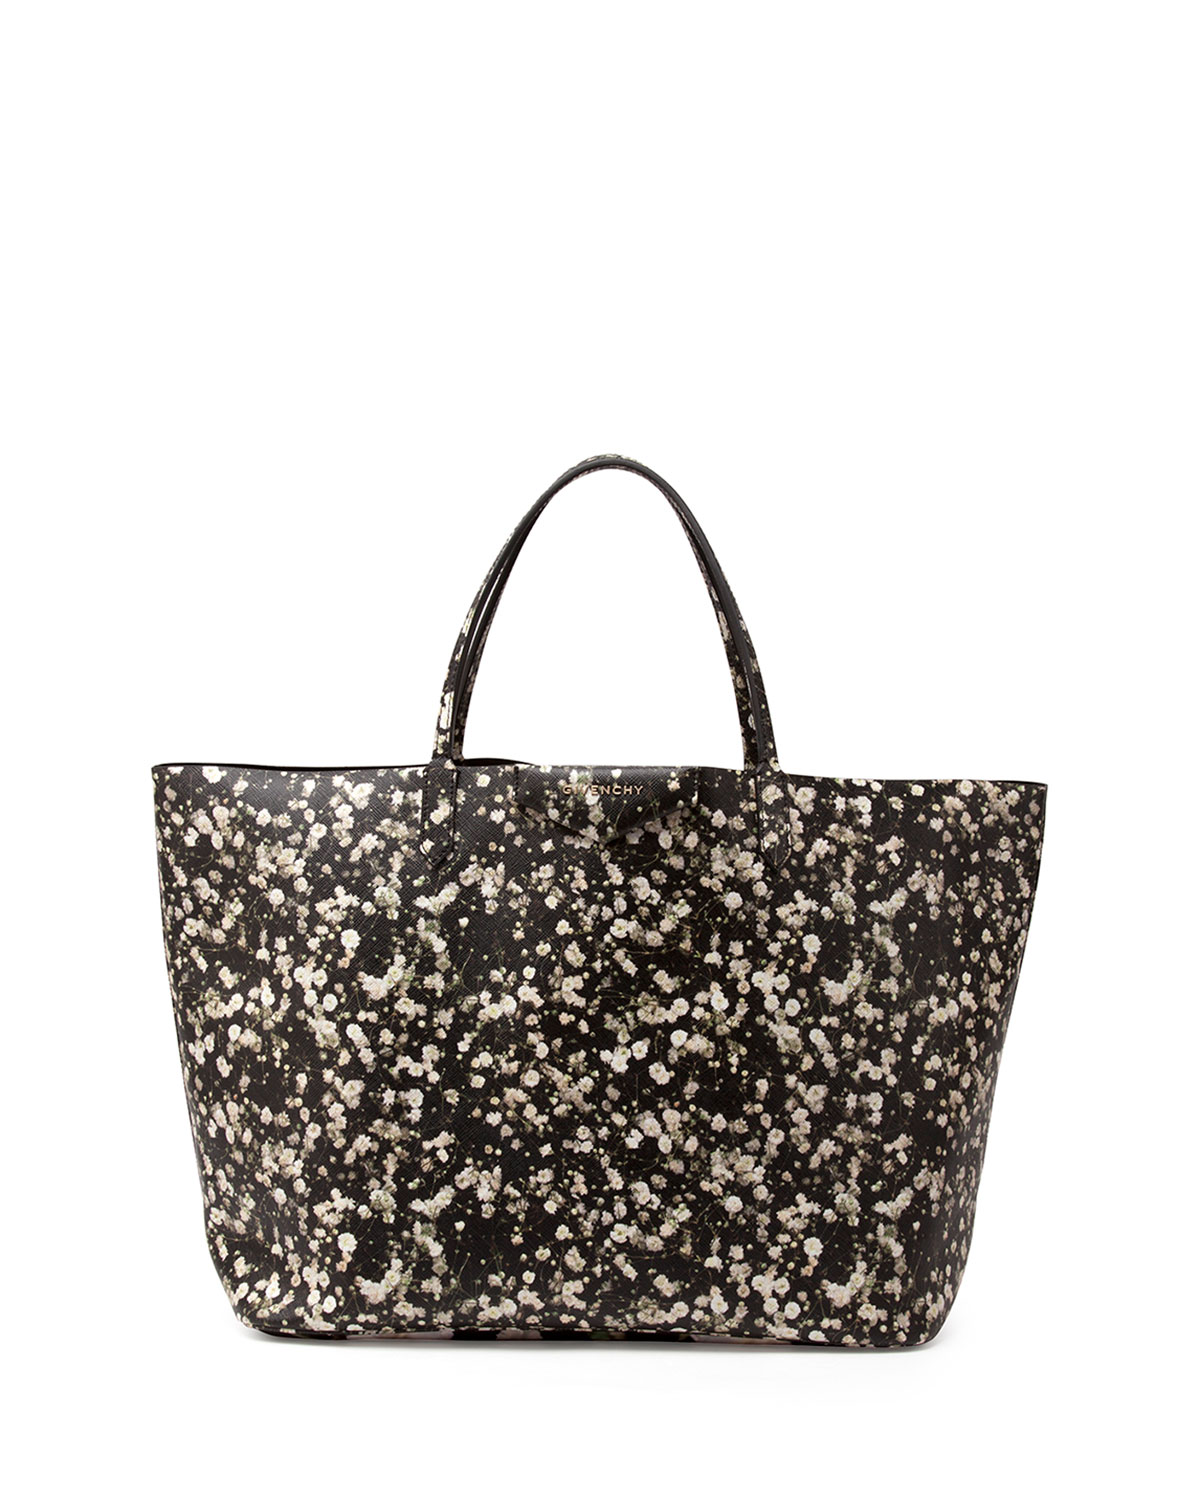 58b751ead2 Givenchy Antigona Large Floral-Print Shopper Tote Bag